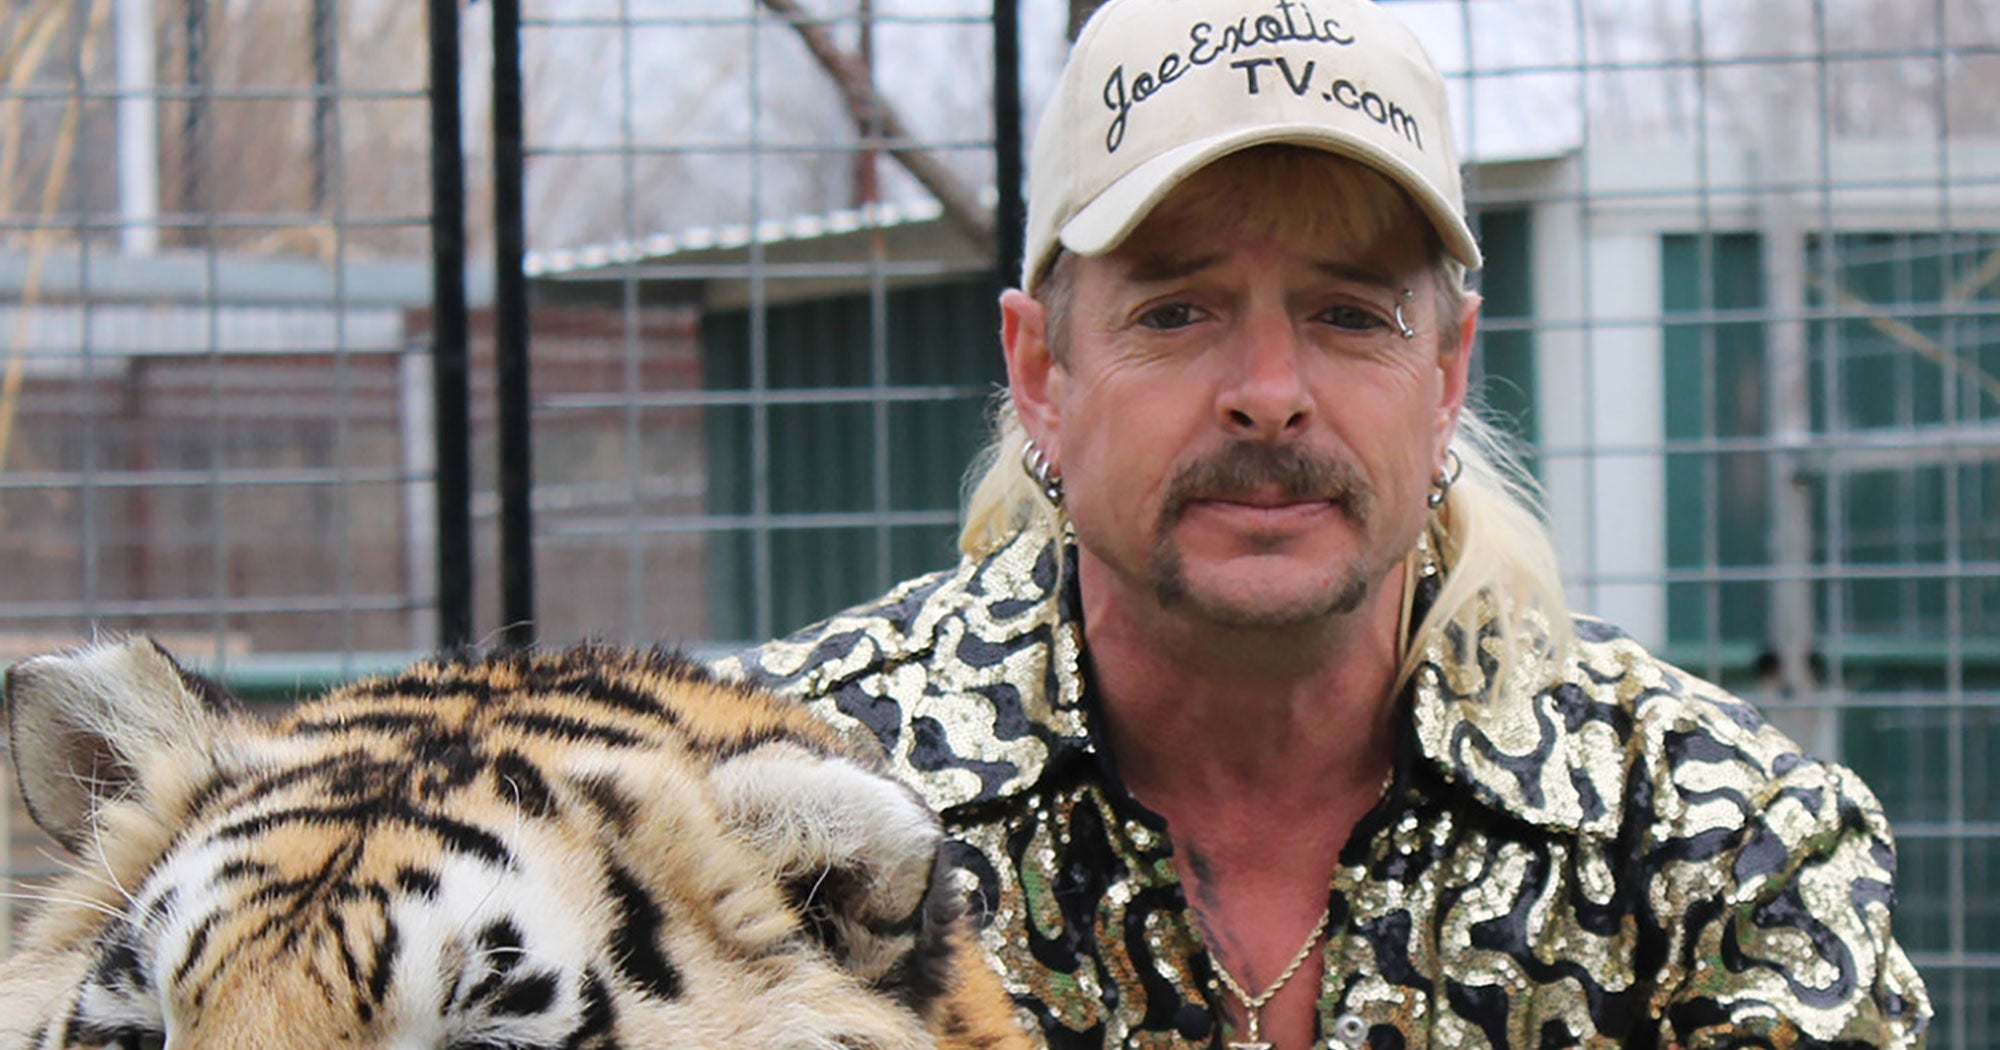 Two Of Hollywood's Biggest Stars Are Feuding Over A Role: Joe Exotic